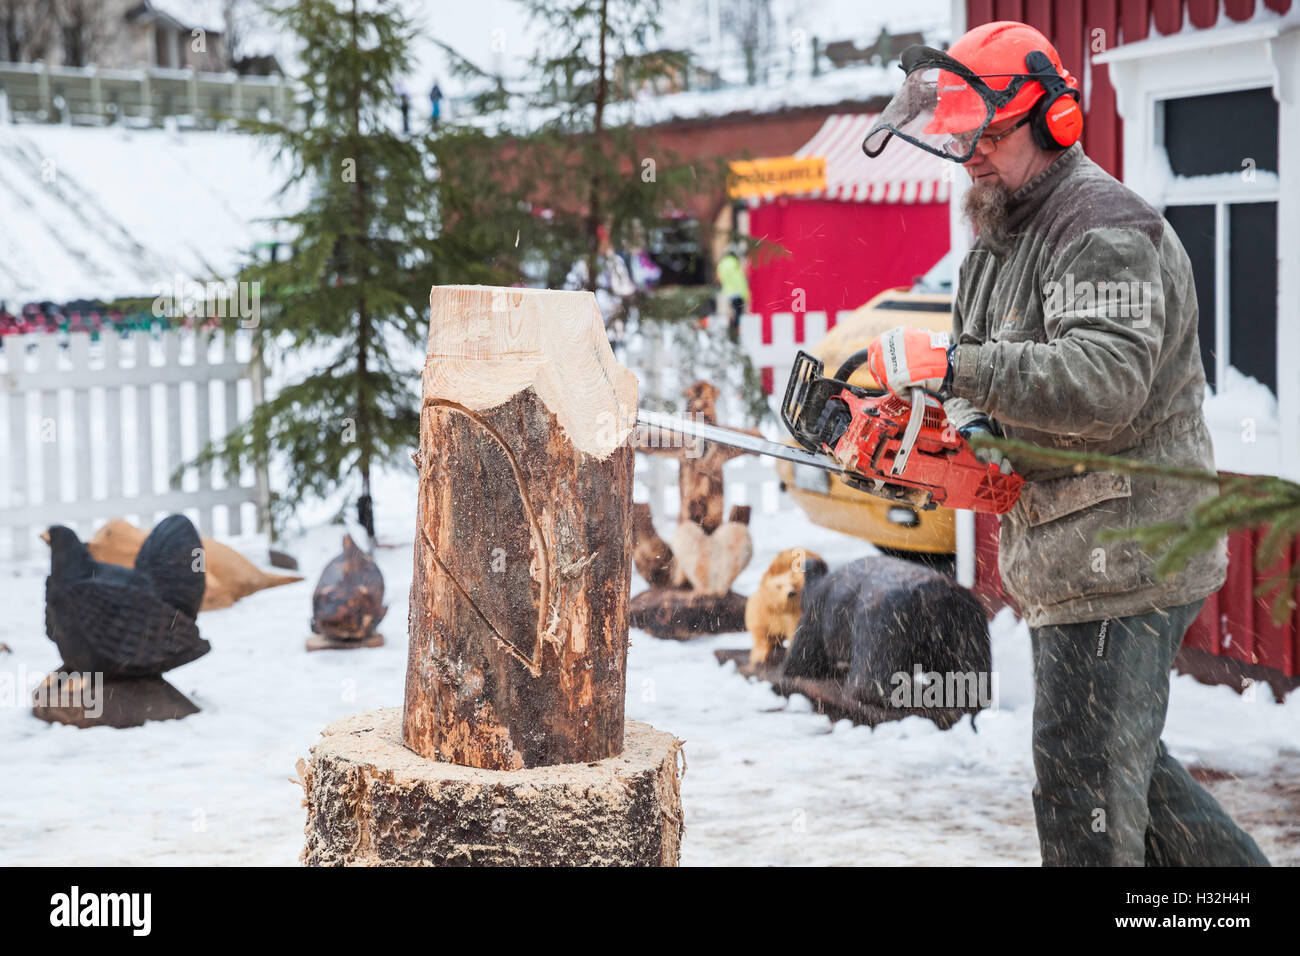 Hamina, Finland - December 13, 2014: Professional Finnish sculptor with a chainsaw produces wooden bird sculpture - Stock Image